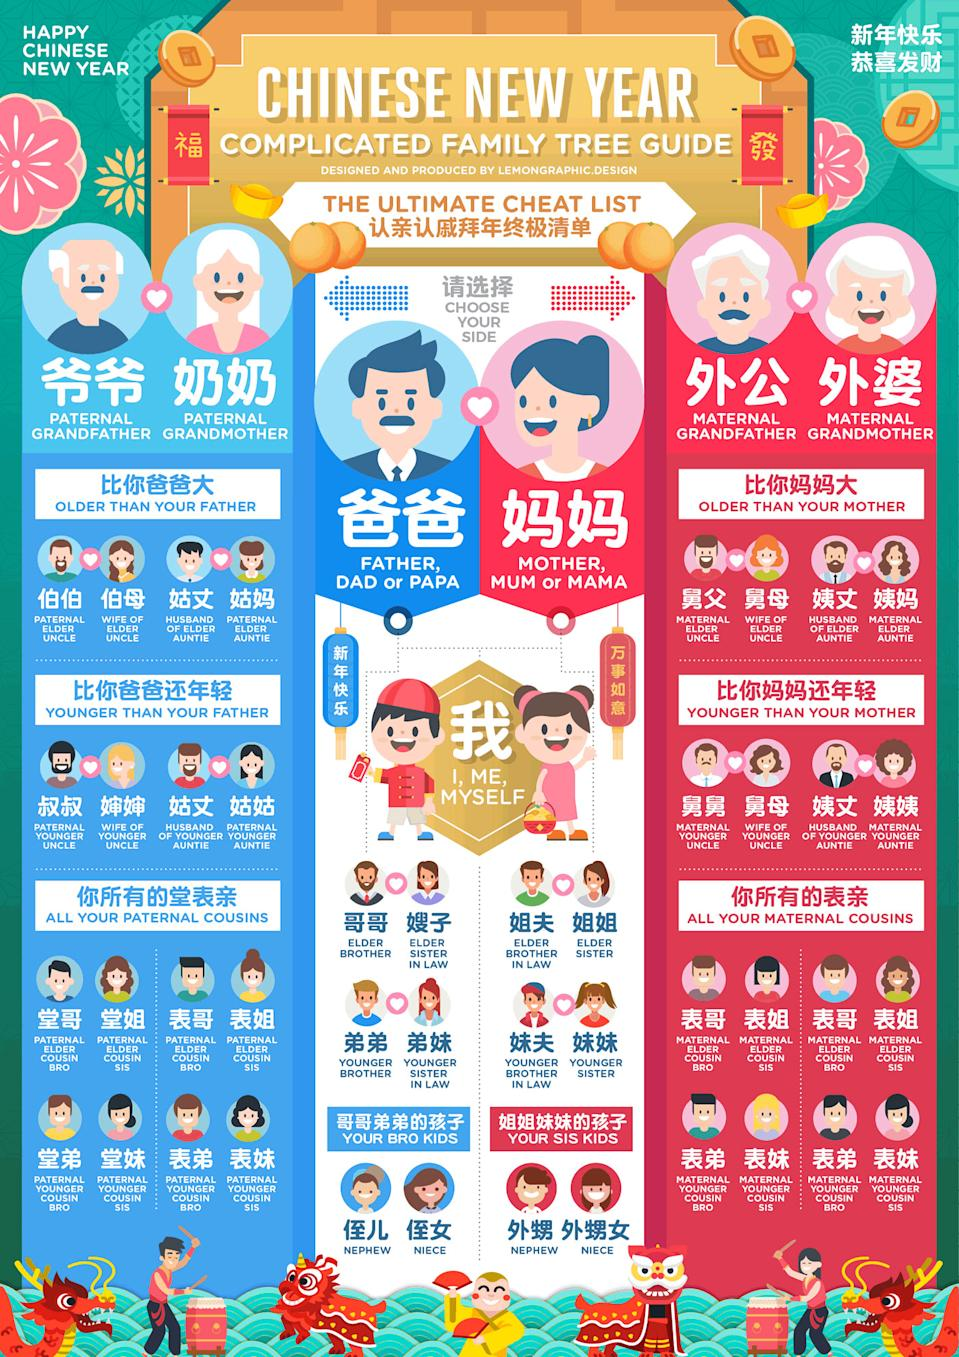 Chinese New Year family tree guide. (PHOTO: Rayz Ong)